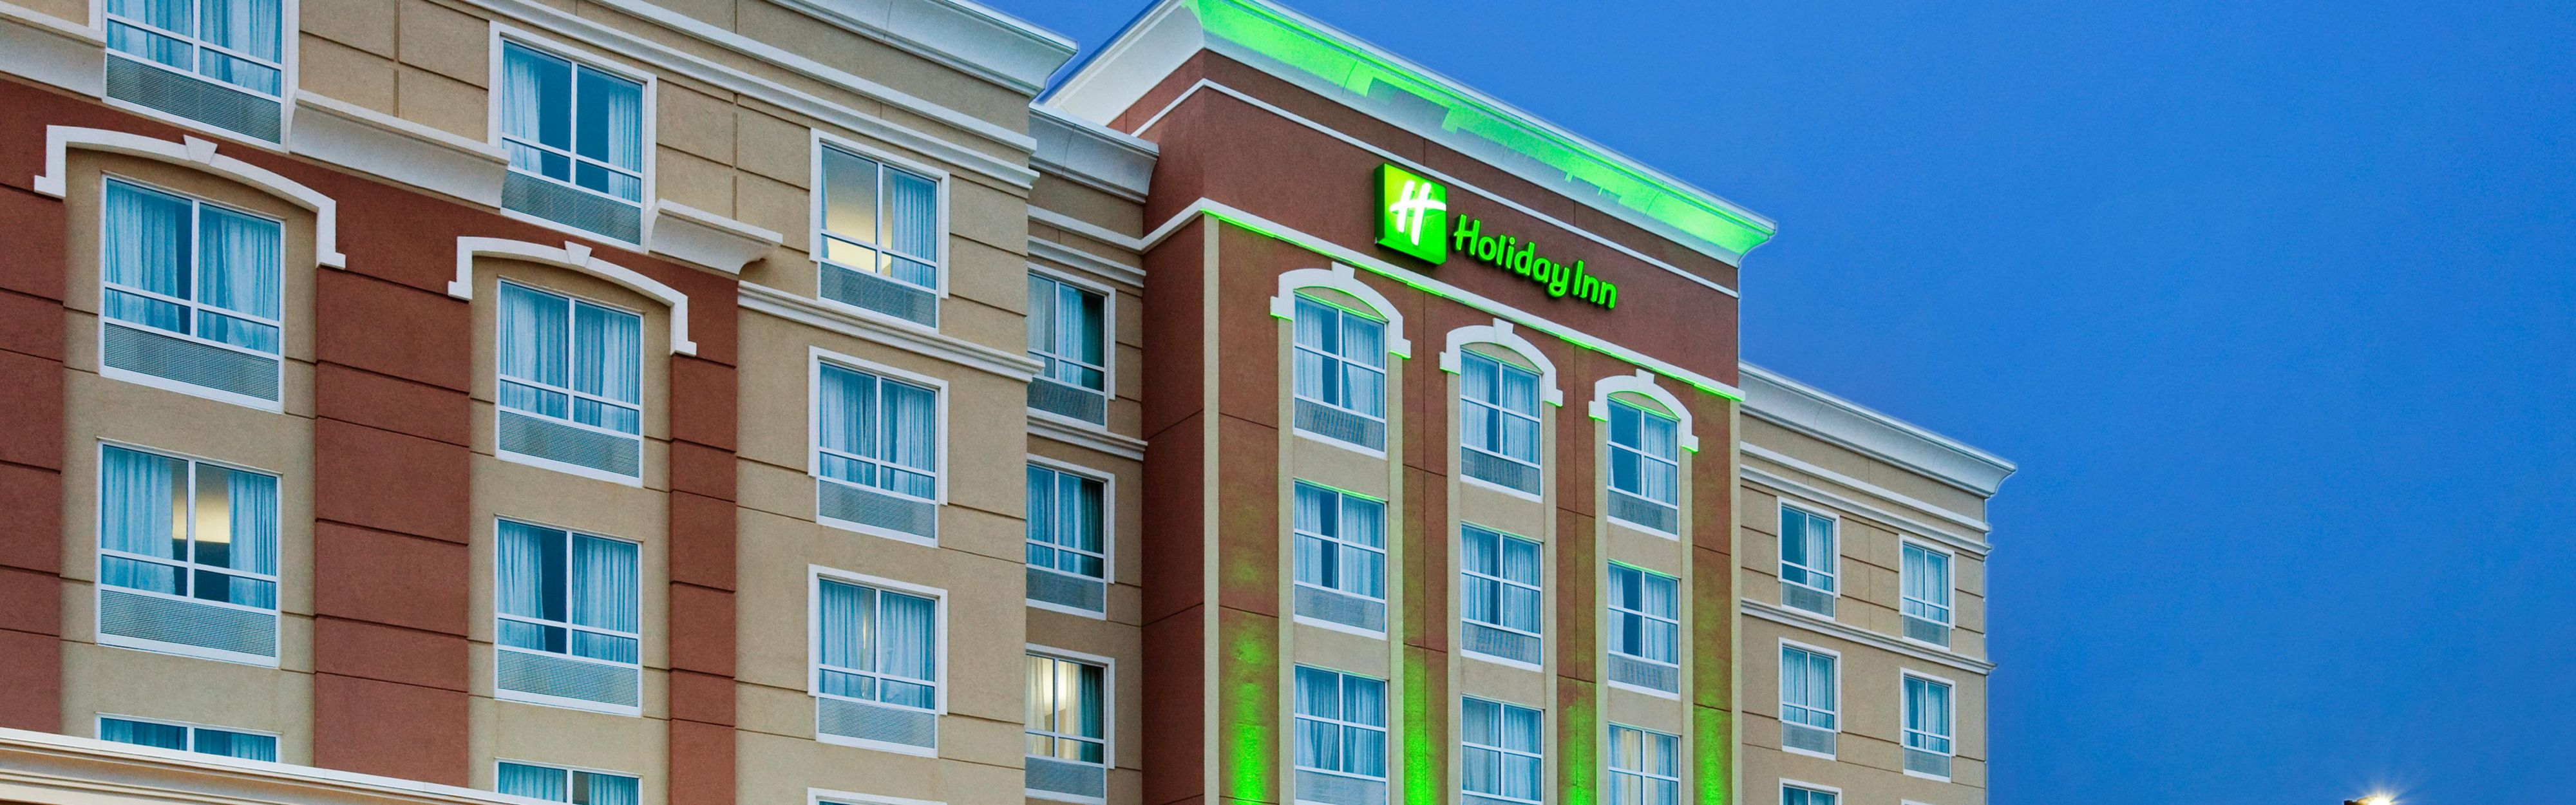 Holiday Inn Rock Hill image 0